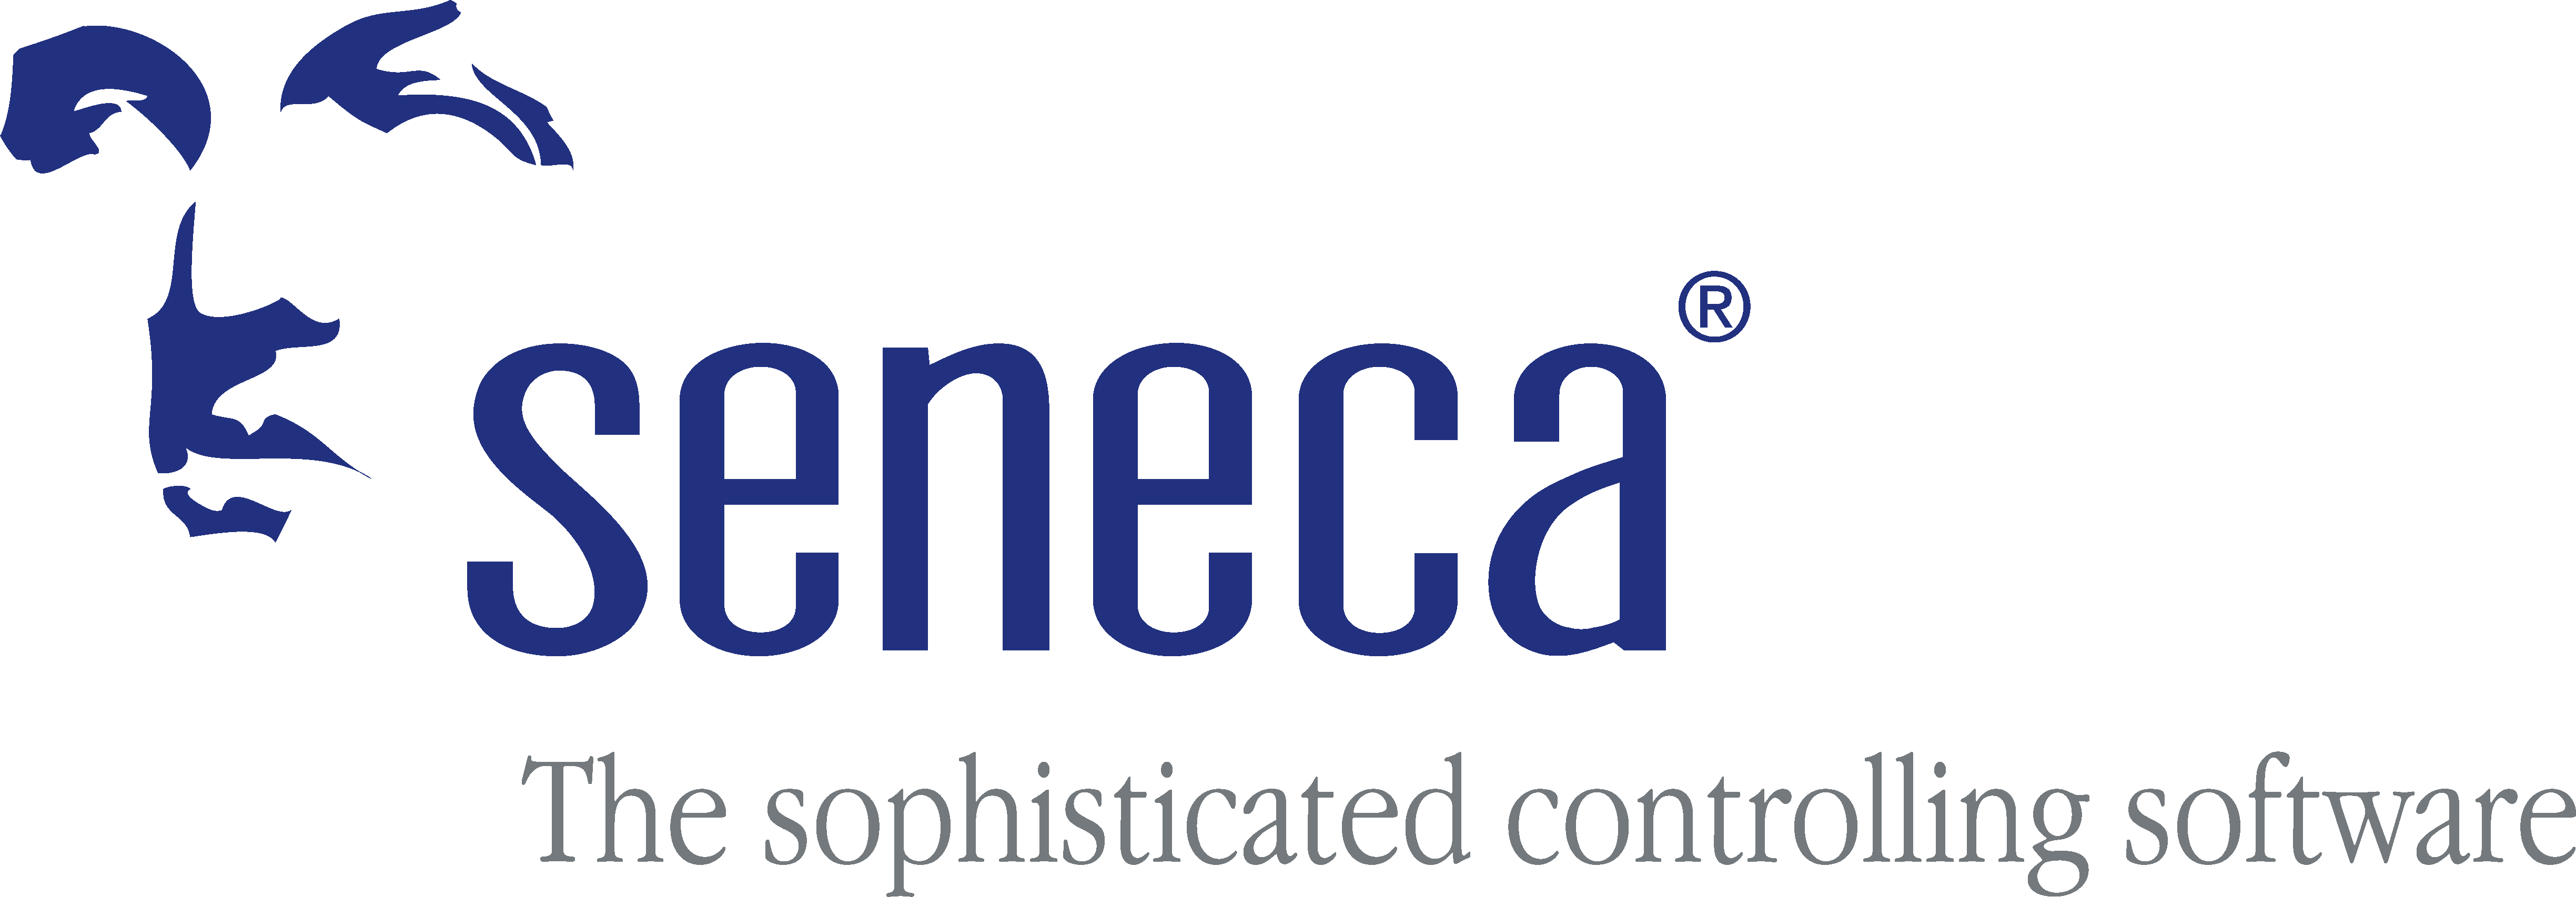 Seneca Business Software GmbH Support